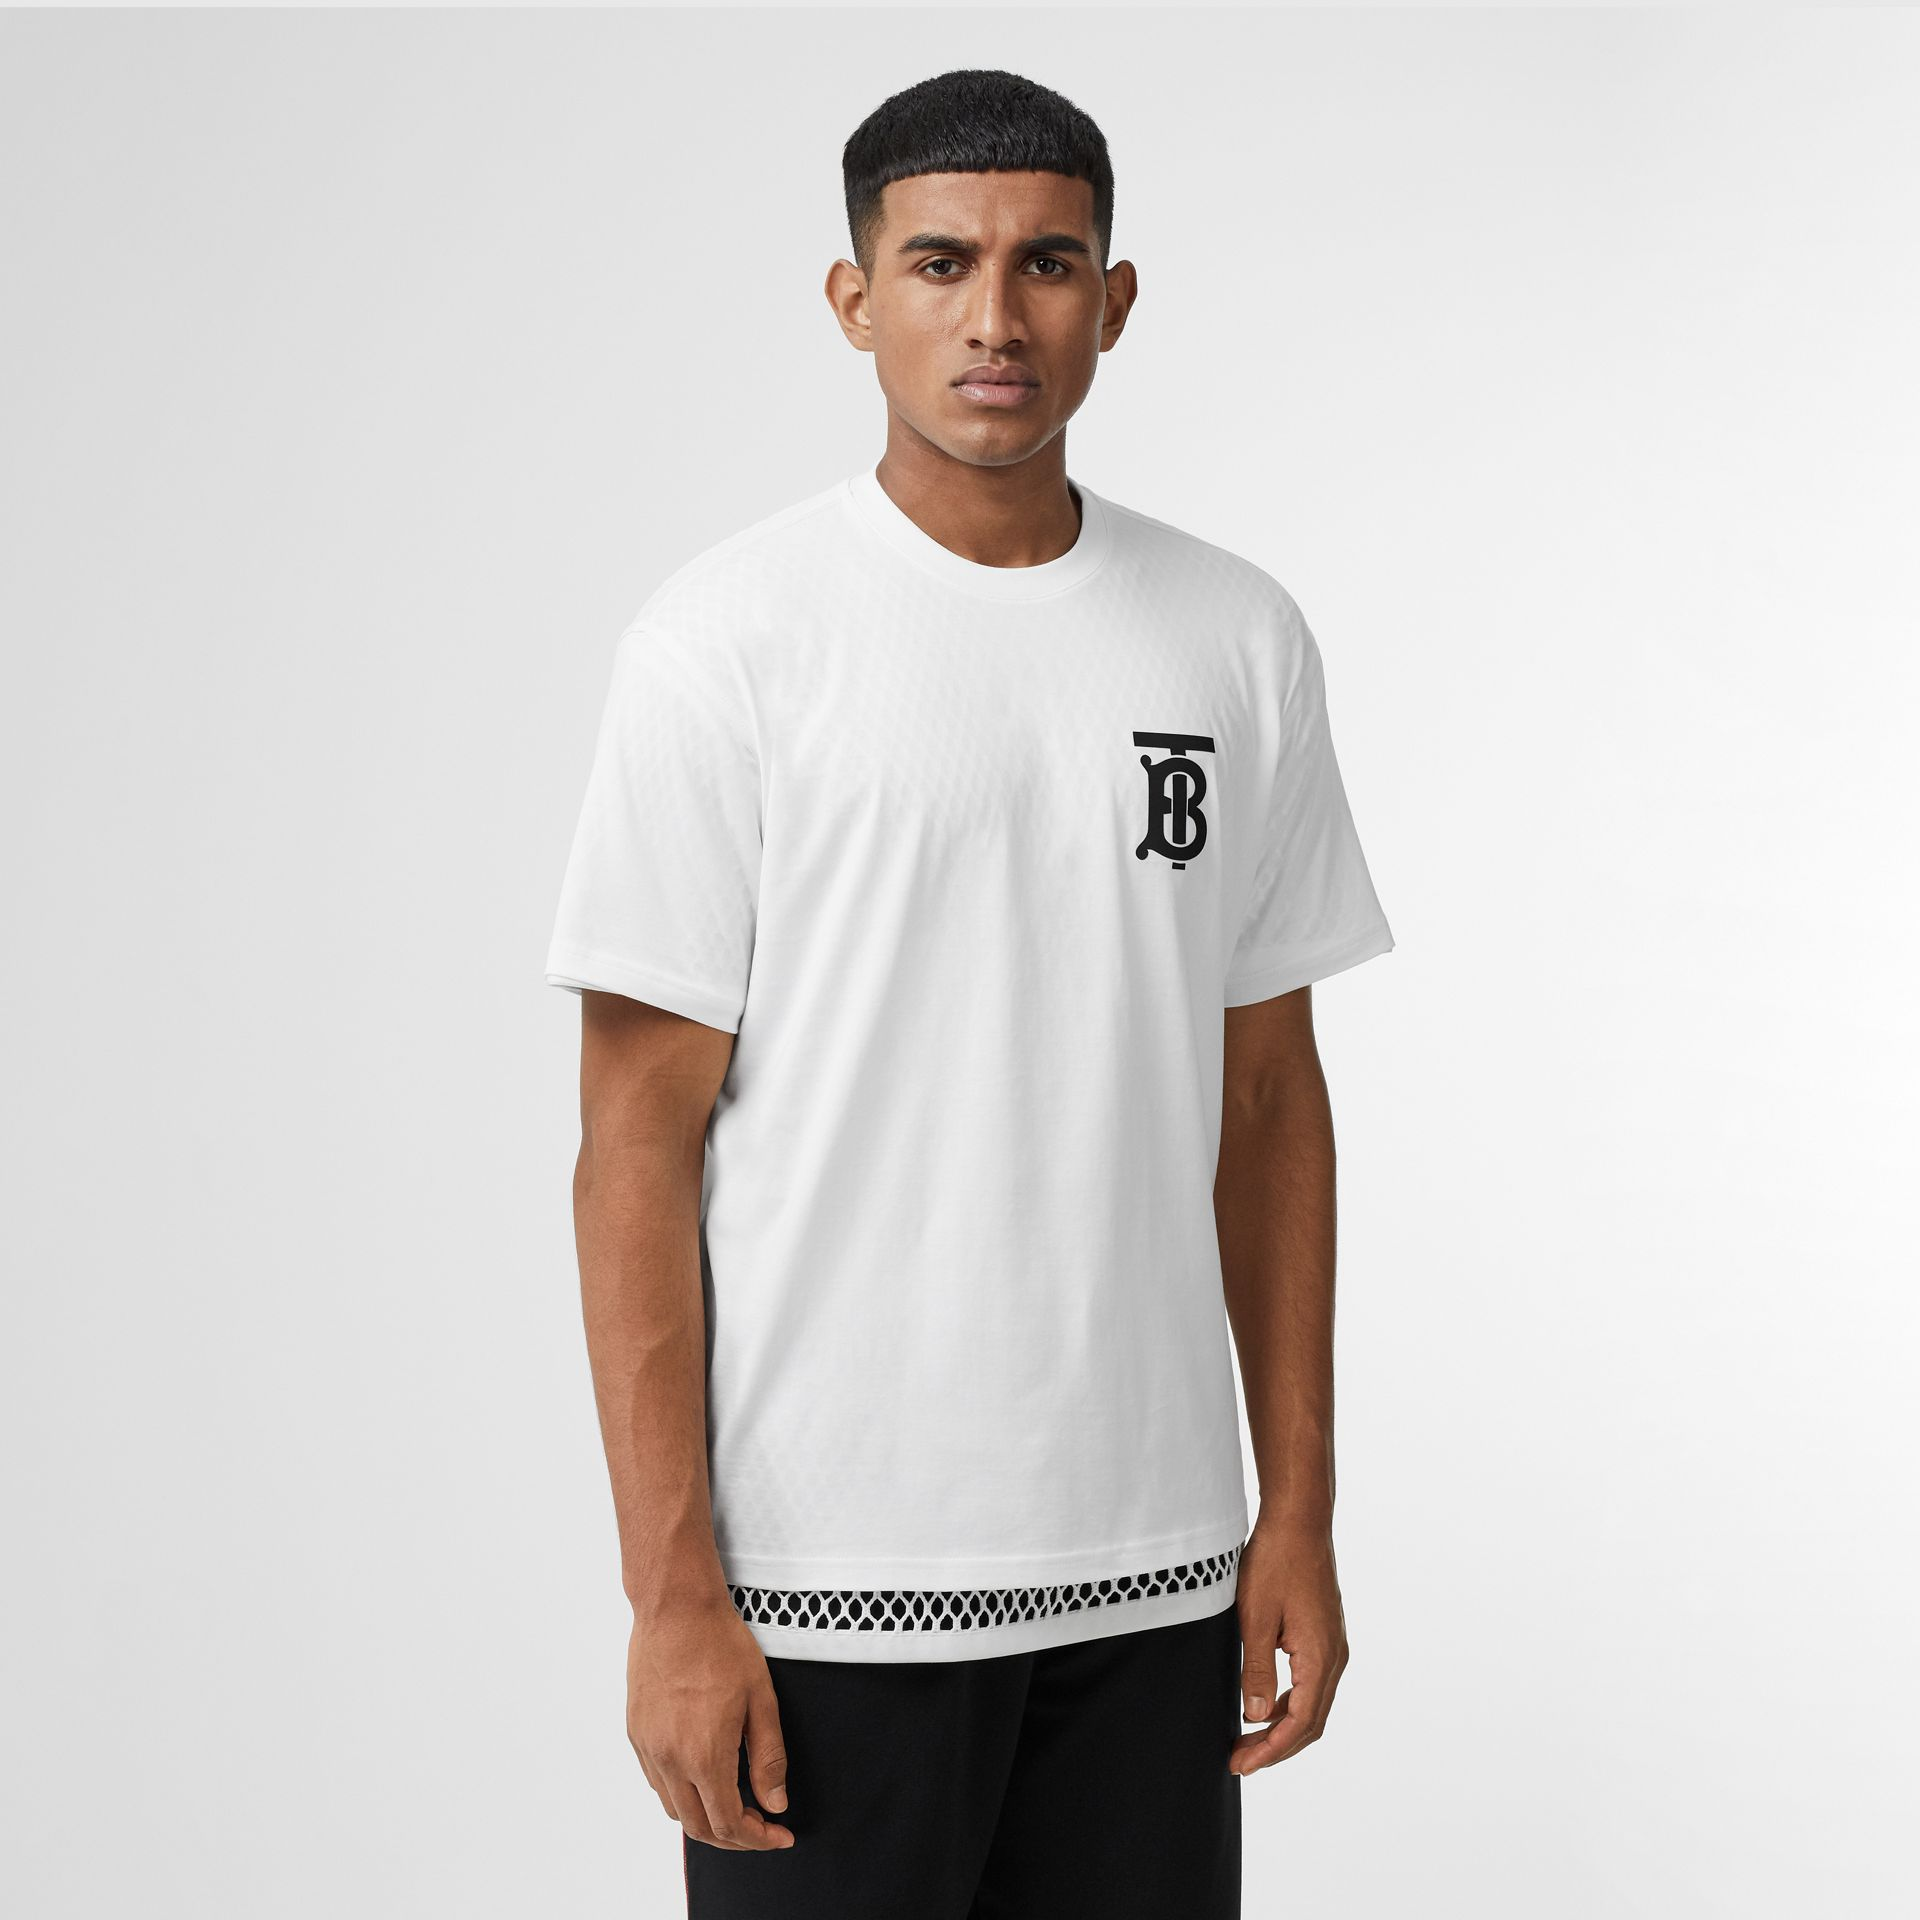 Monogram Motif Cotton Oversized T-shirt in White - Men | Burberry - gallery image 4